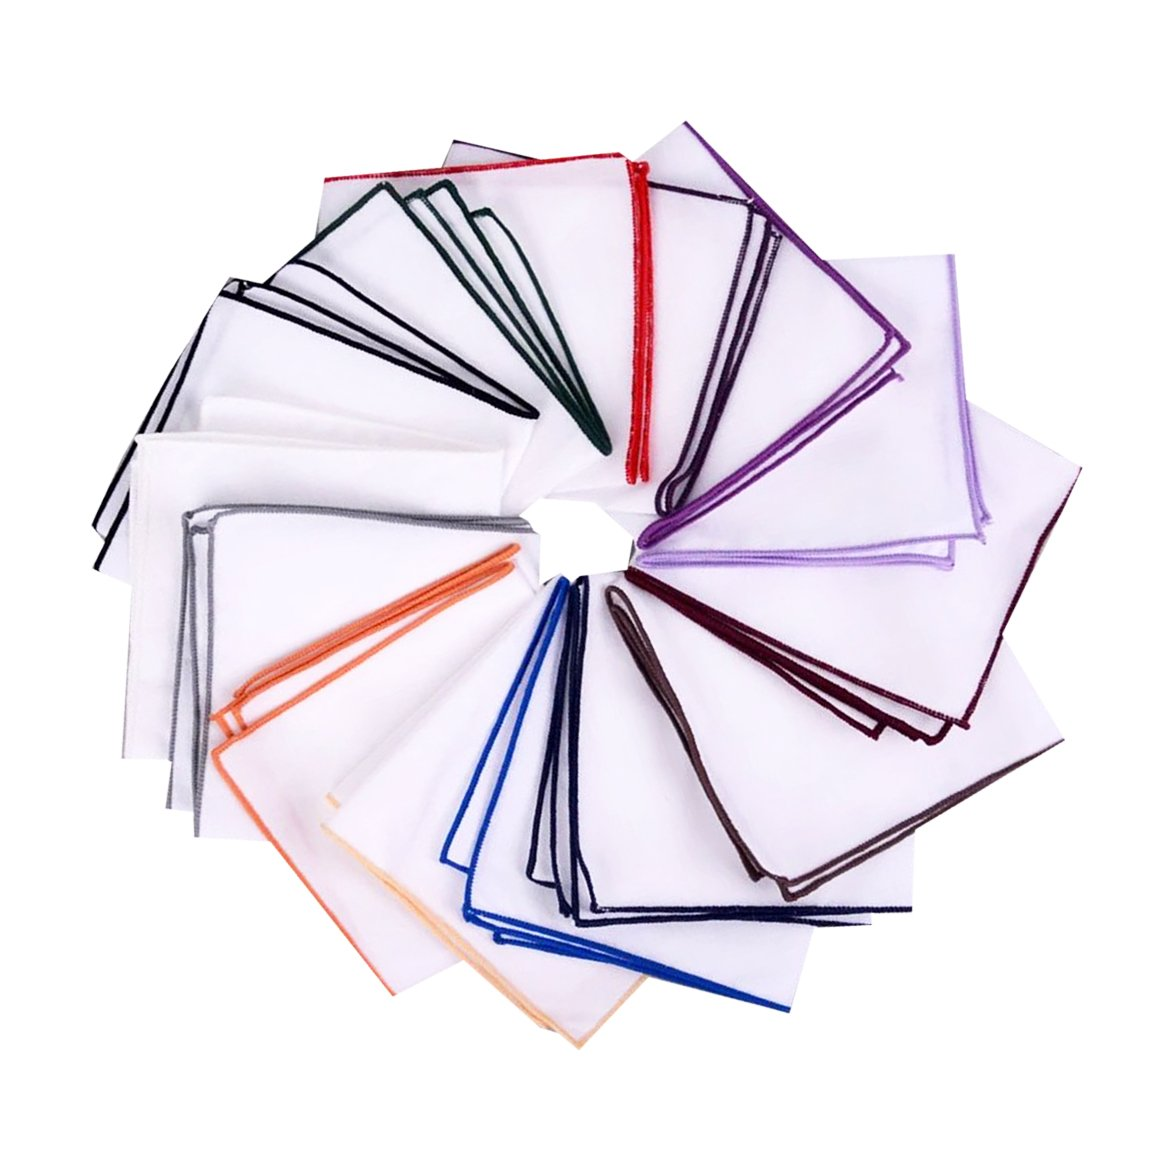 Assorted Pack of Mens Classic White Cotton Pocket Square for suits Handkerchiefs